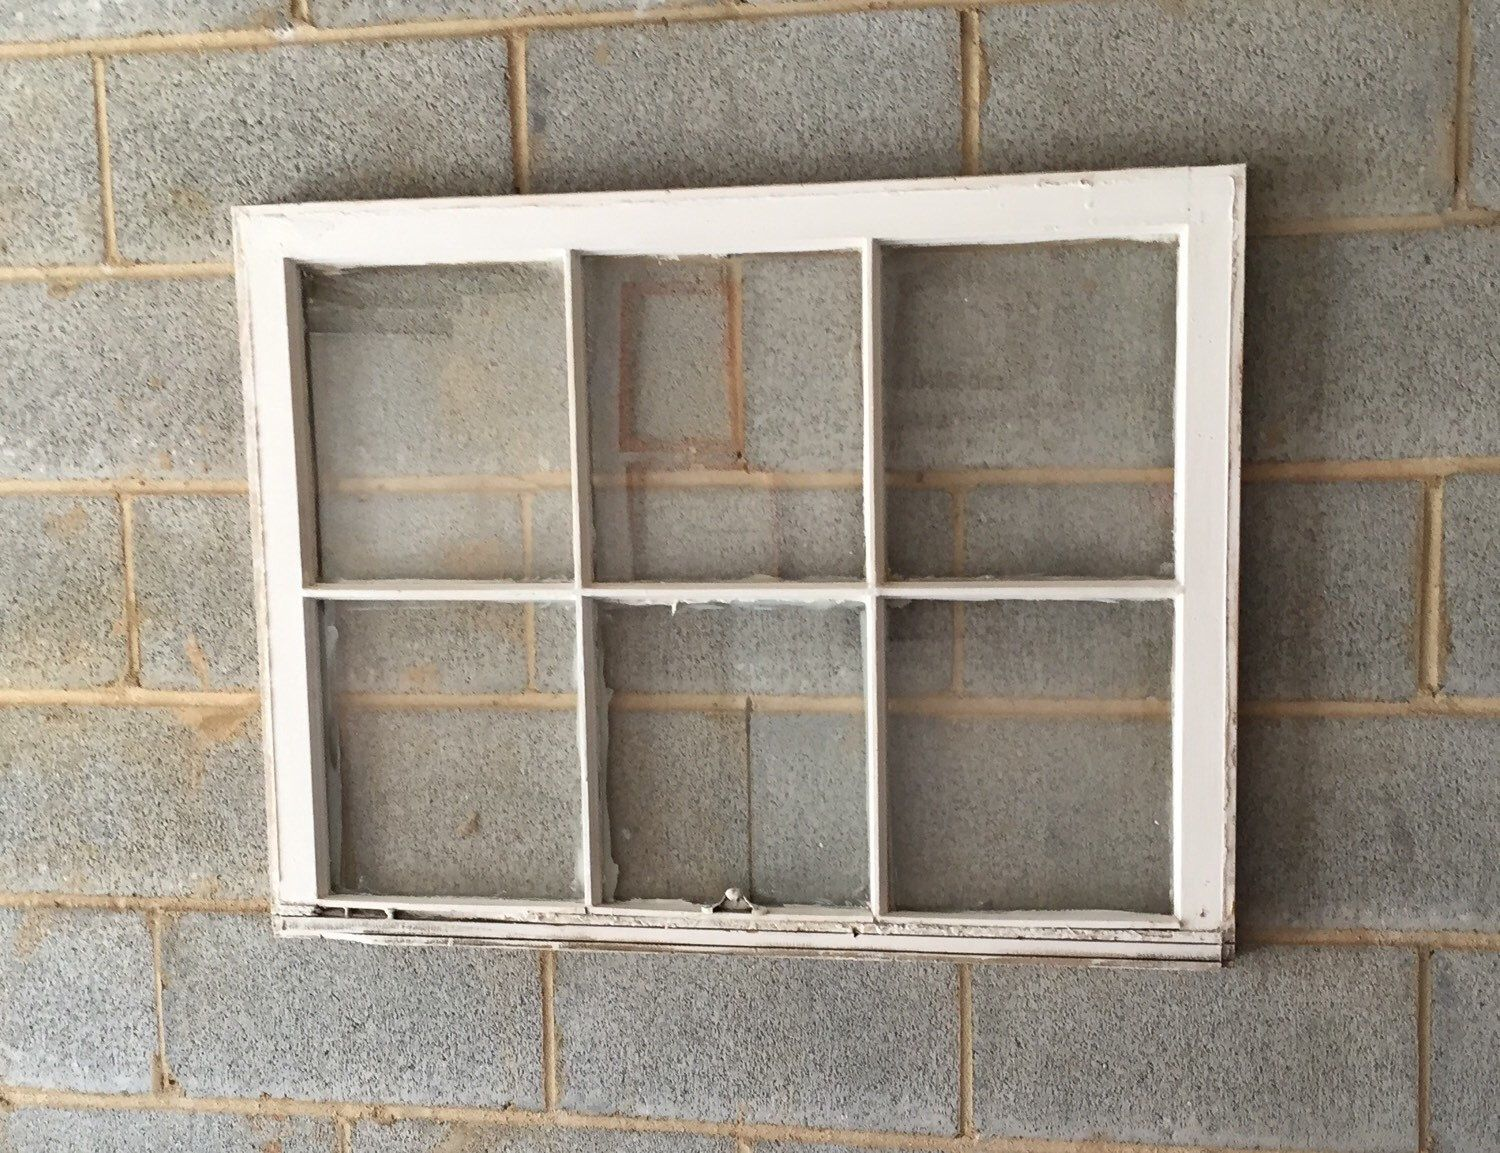 Vintage 6 Pane Window Frame - White, 36 x 27, Rustic, Wedding, Beach ...